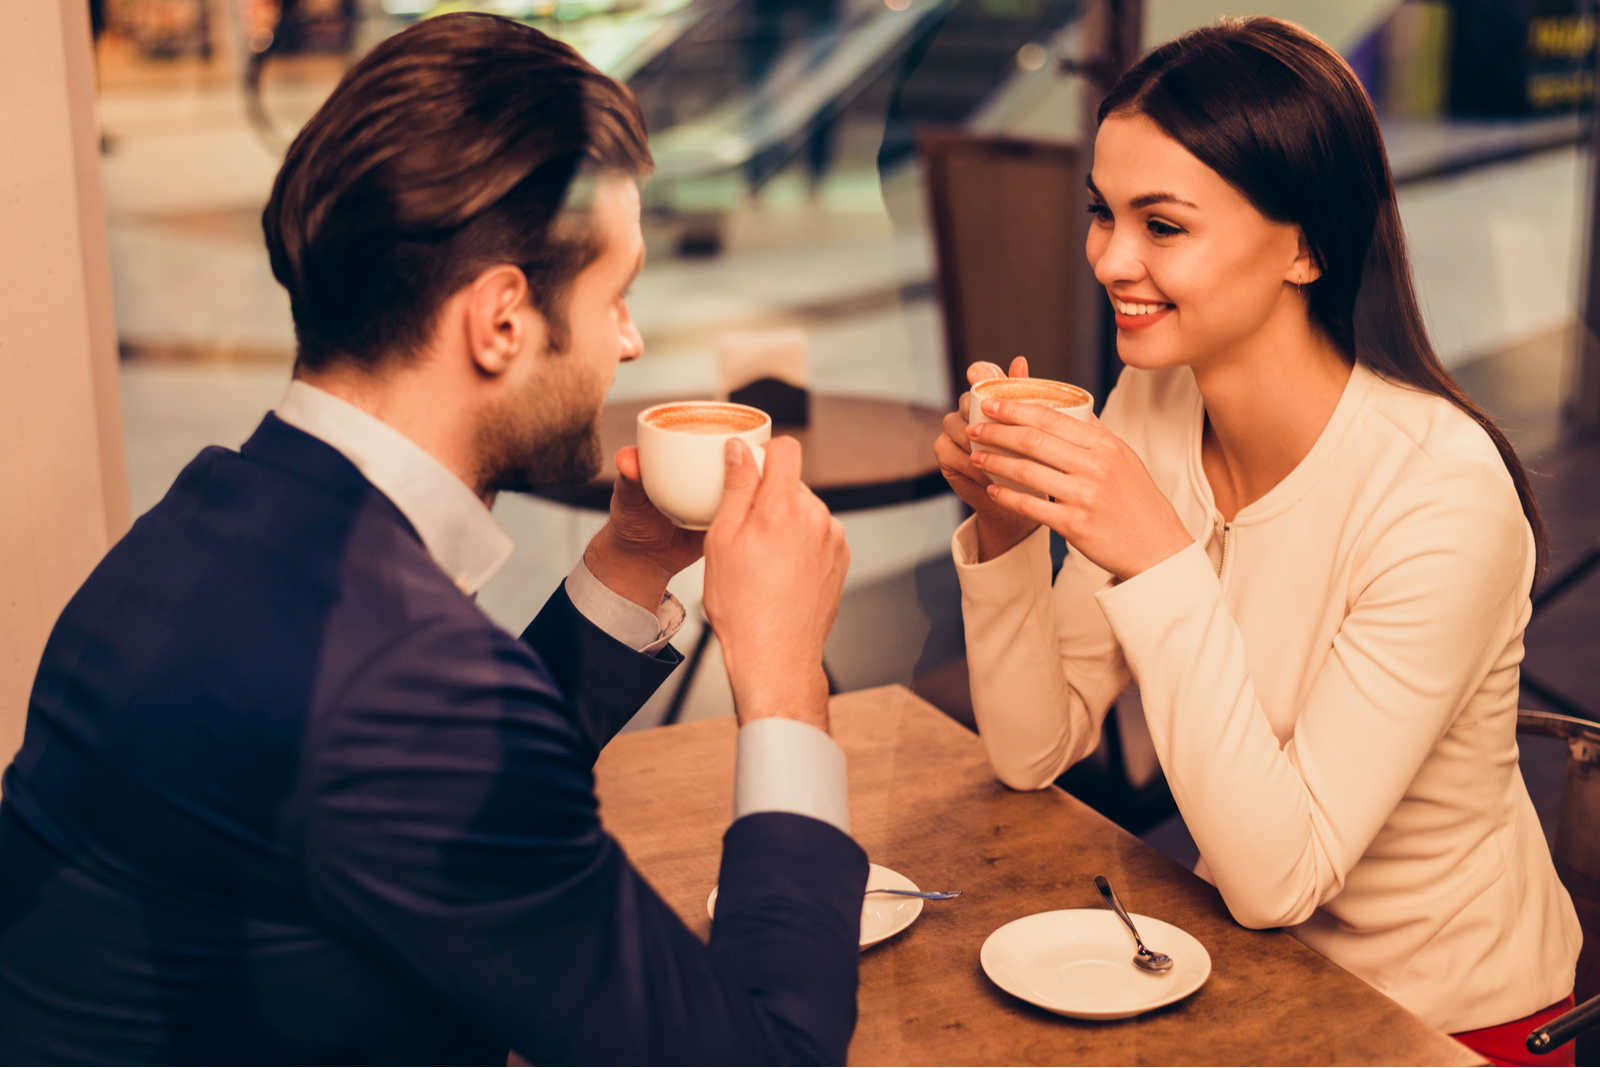 a smiling loving couple sitting at a table drinking coffee